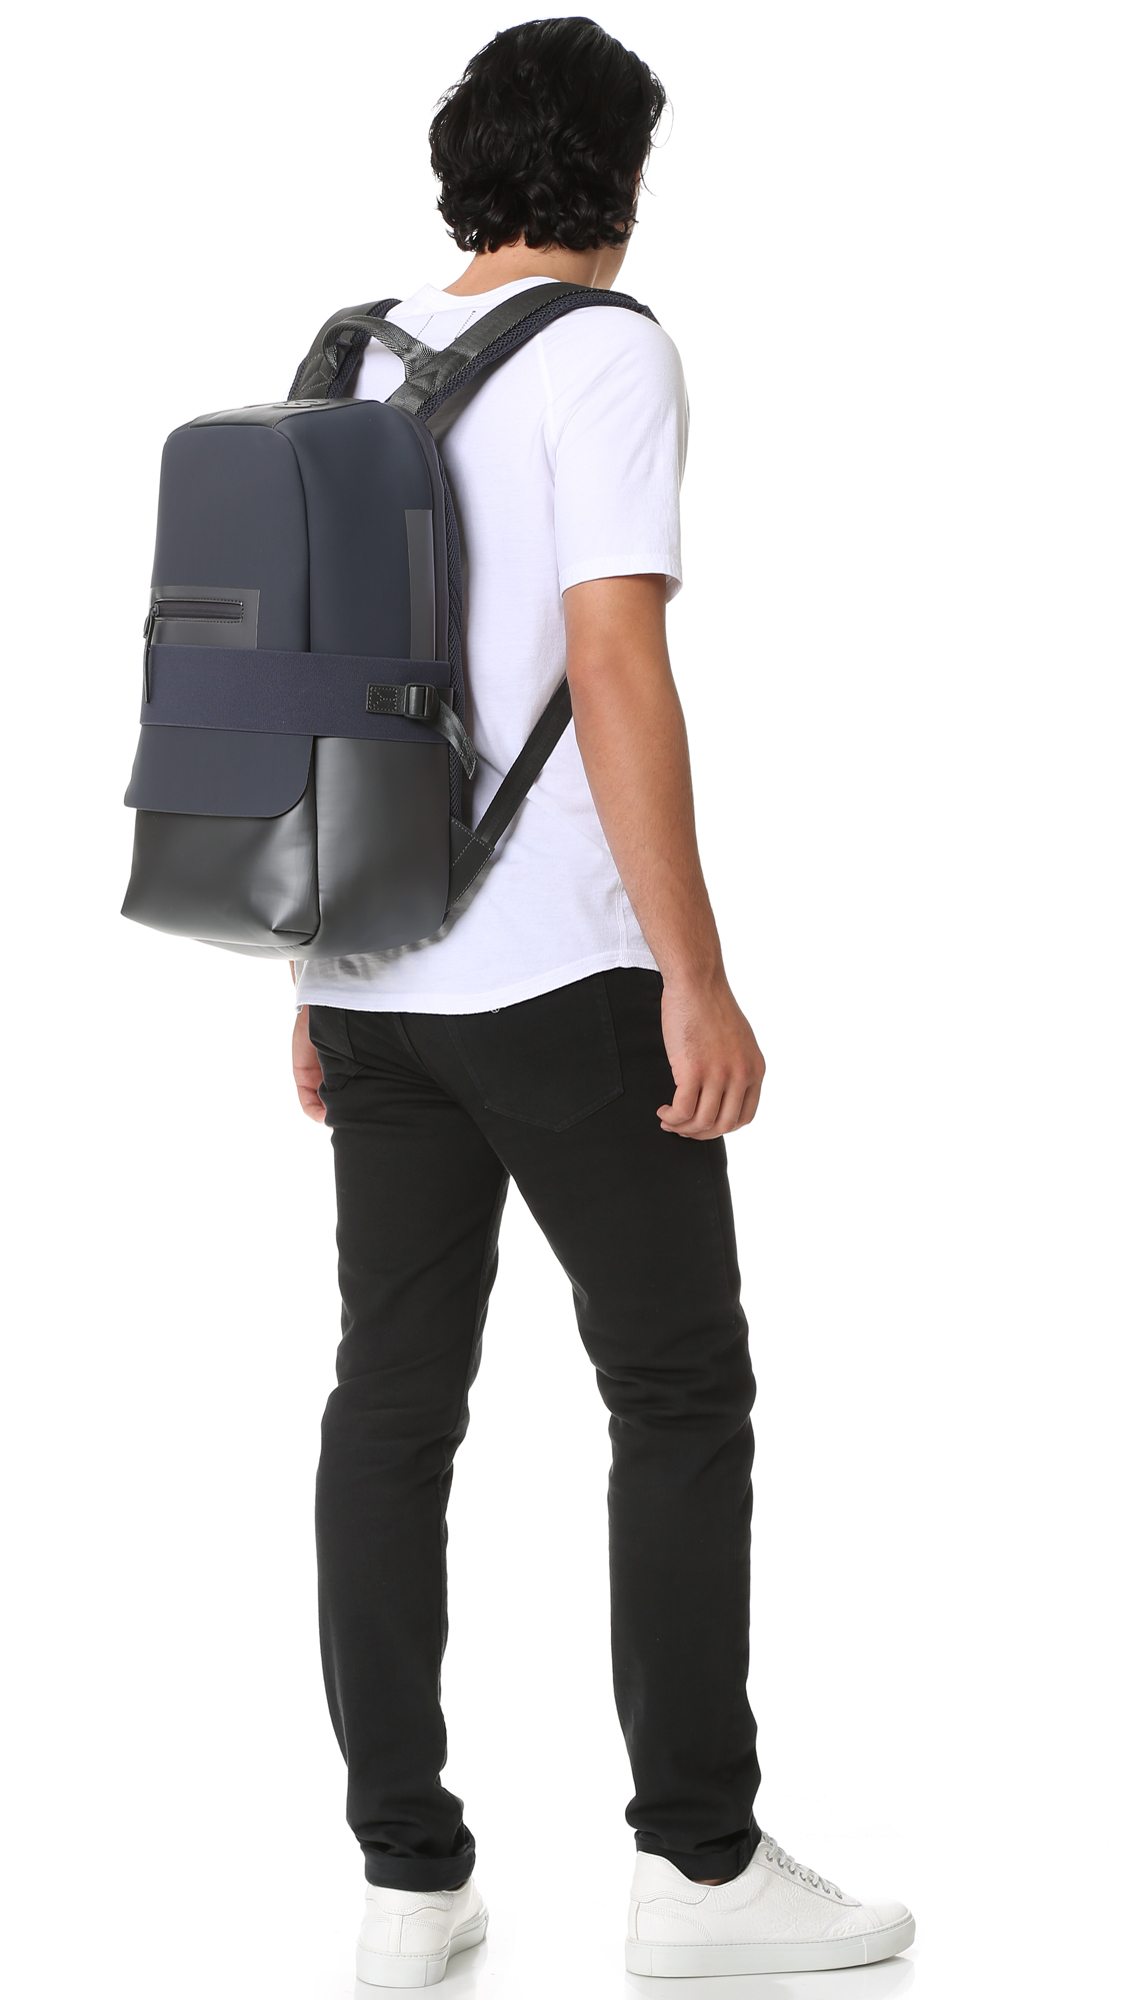 a6ab077ccb8 Y-3 Y-3 Qasa Backpack   EAST DANE